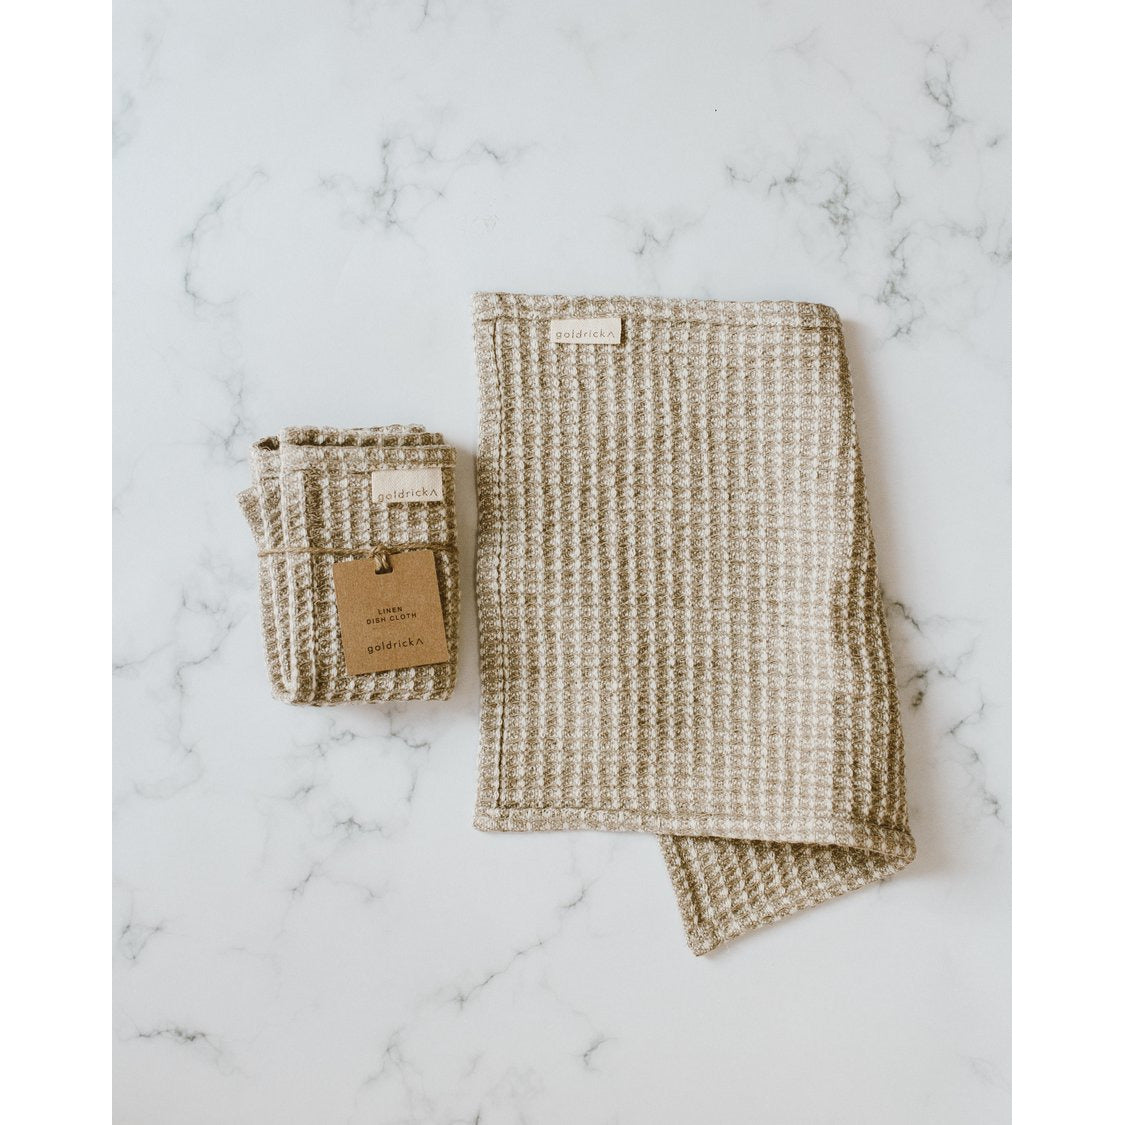 Goldrick Linen Dish Cloth | 100% Linen - Scandi Minimal